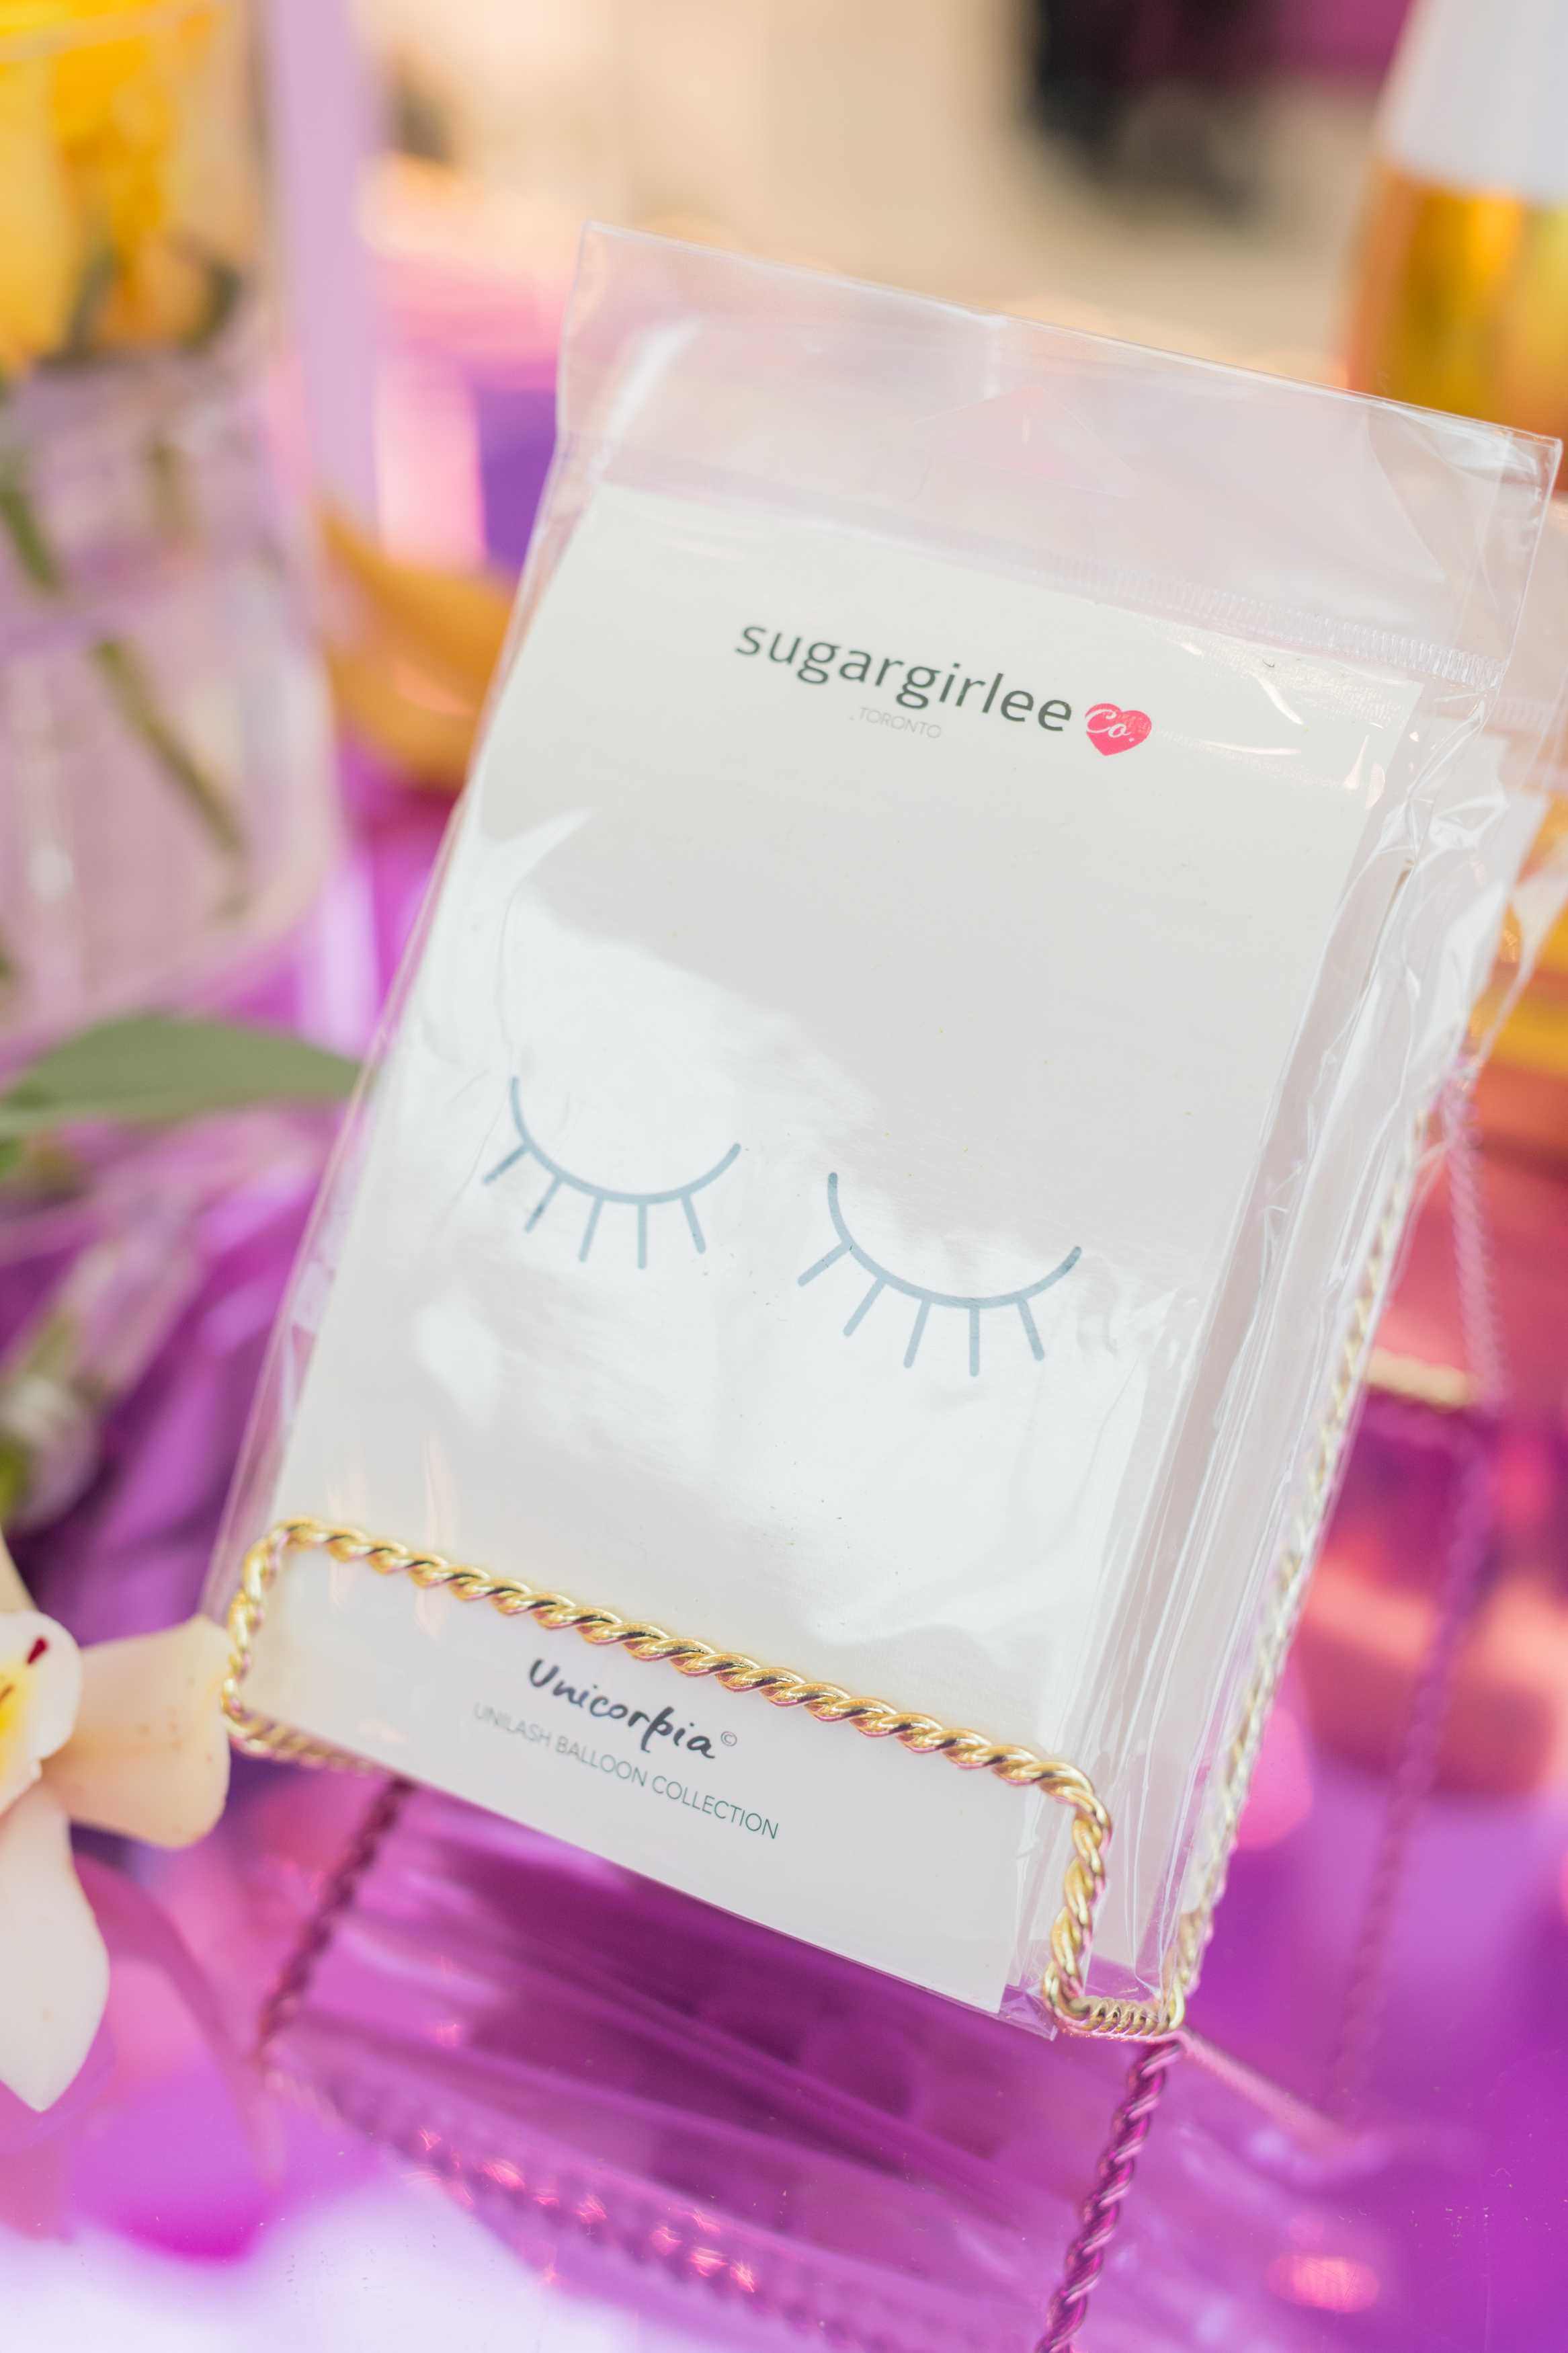 August In Bloom - Sugar Girlee product - #SQ1Bridal (Square One Shopping Centre)